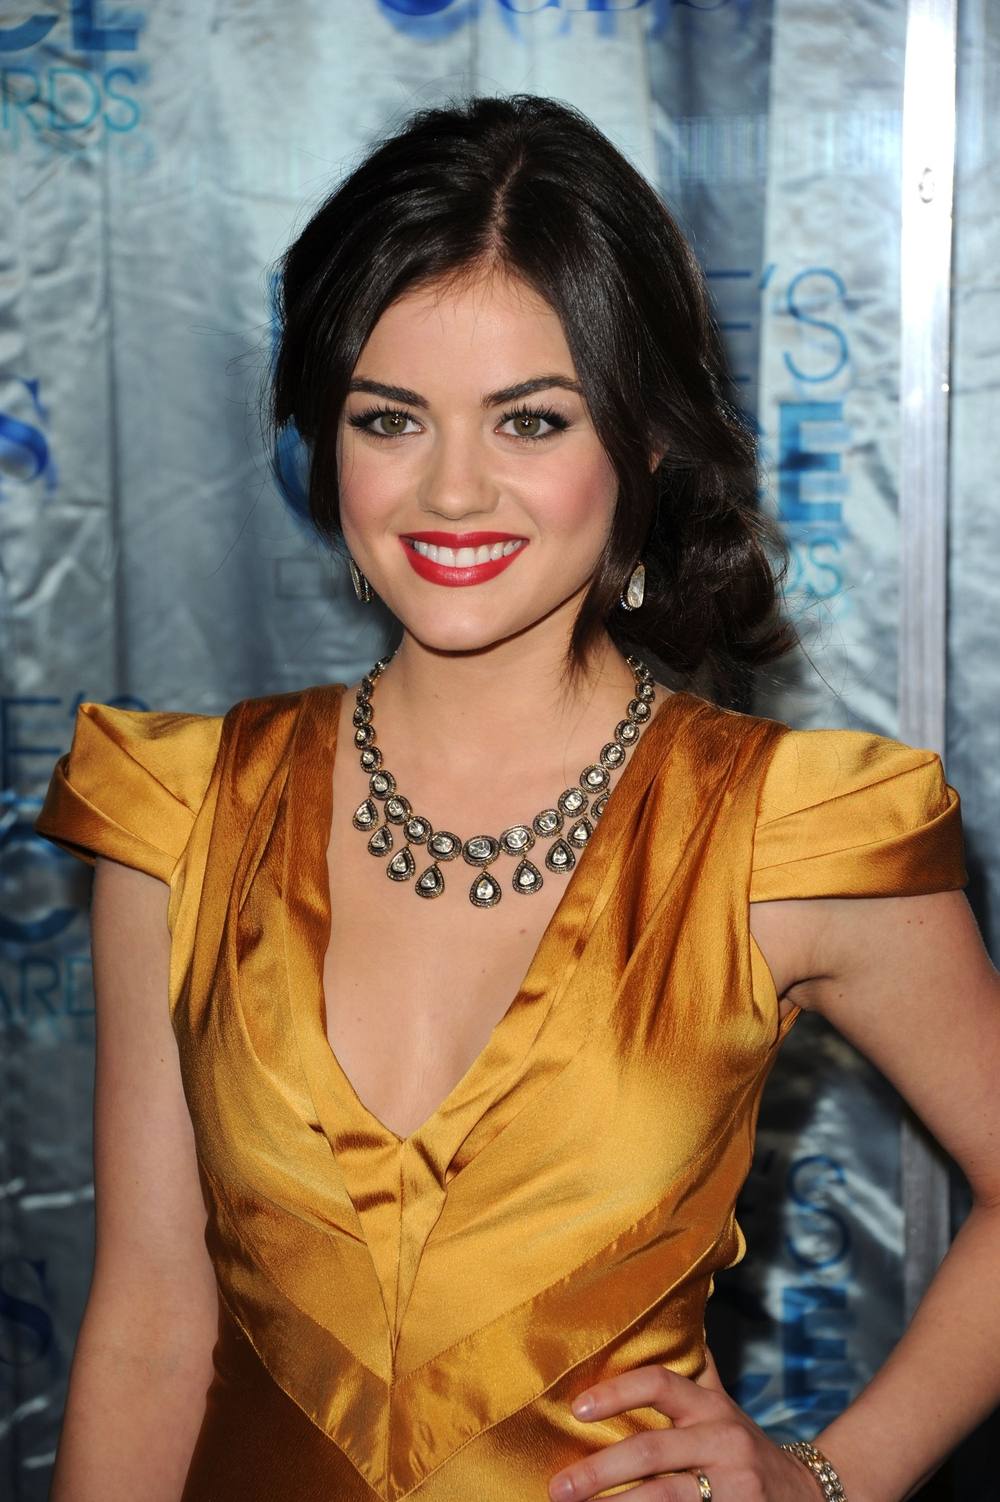 Lucy Hale Was a Singing Star on American Juniors